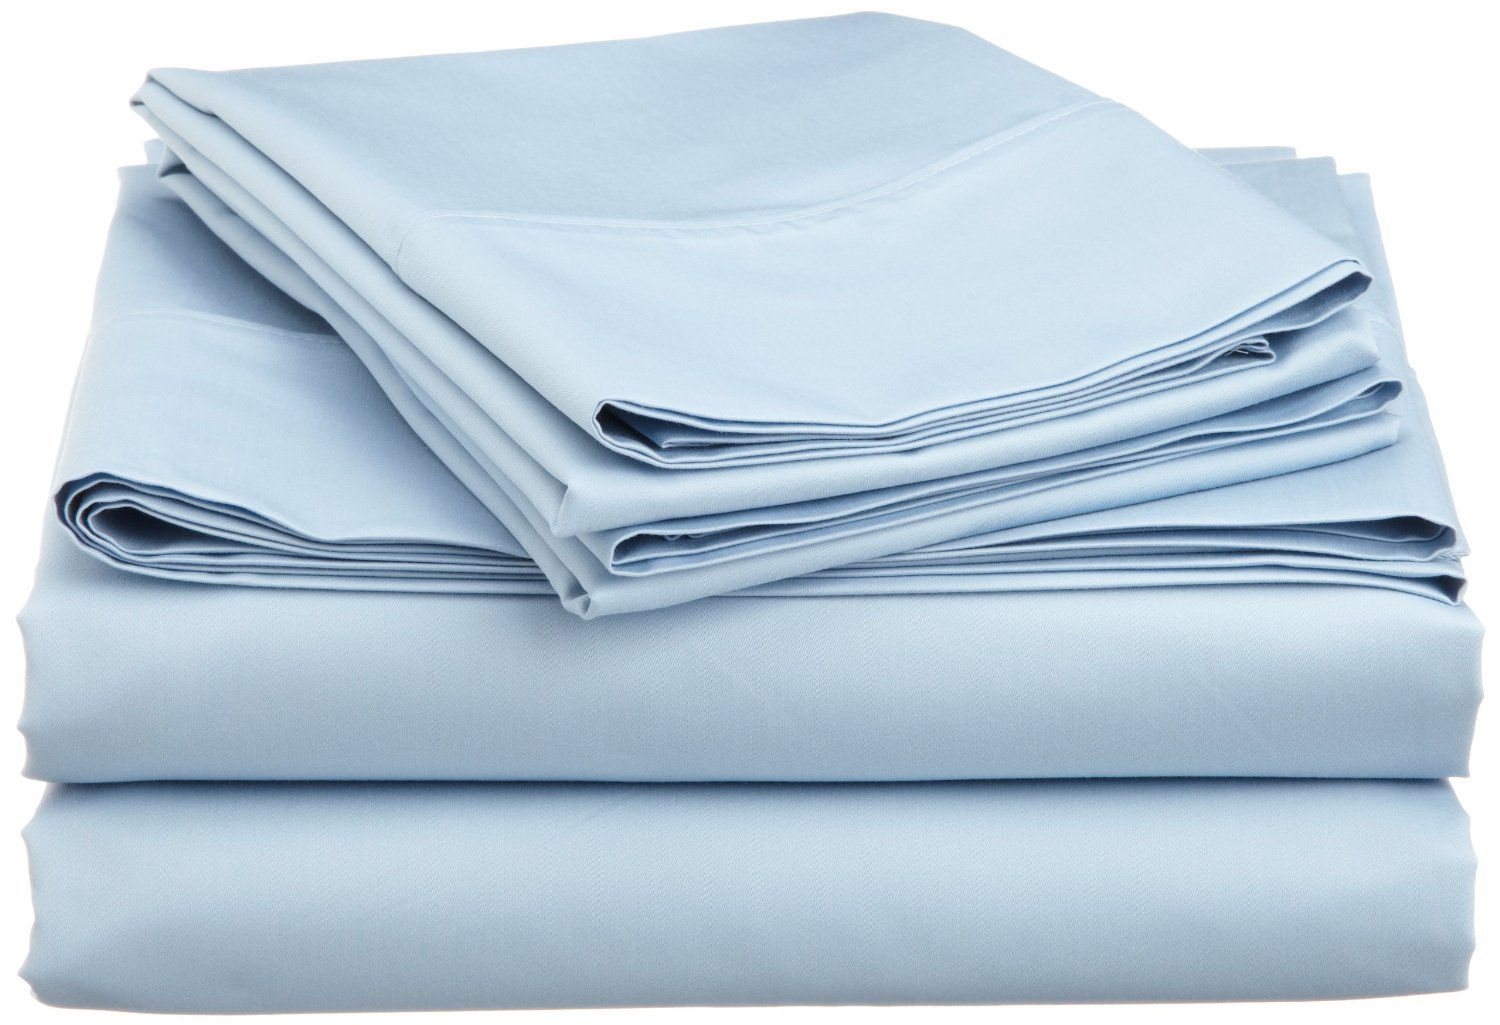 1000 Thread Count Nicely Fab RV Short Queen ( Size ) 100% Egyptian Cotton Flat / Top Sheet With Extra 2 PC Pillow Cases All Heavy Colors Solid ( Light Blue ) By Galaxy's Linen